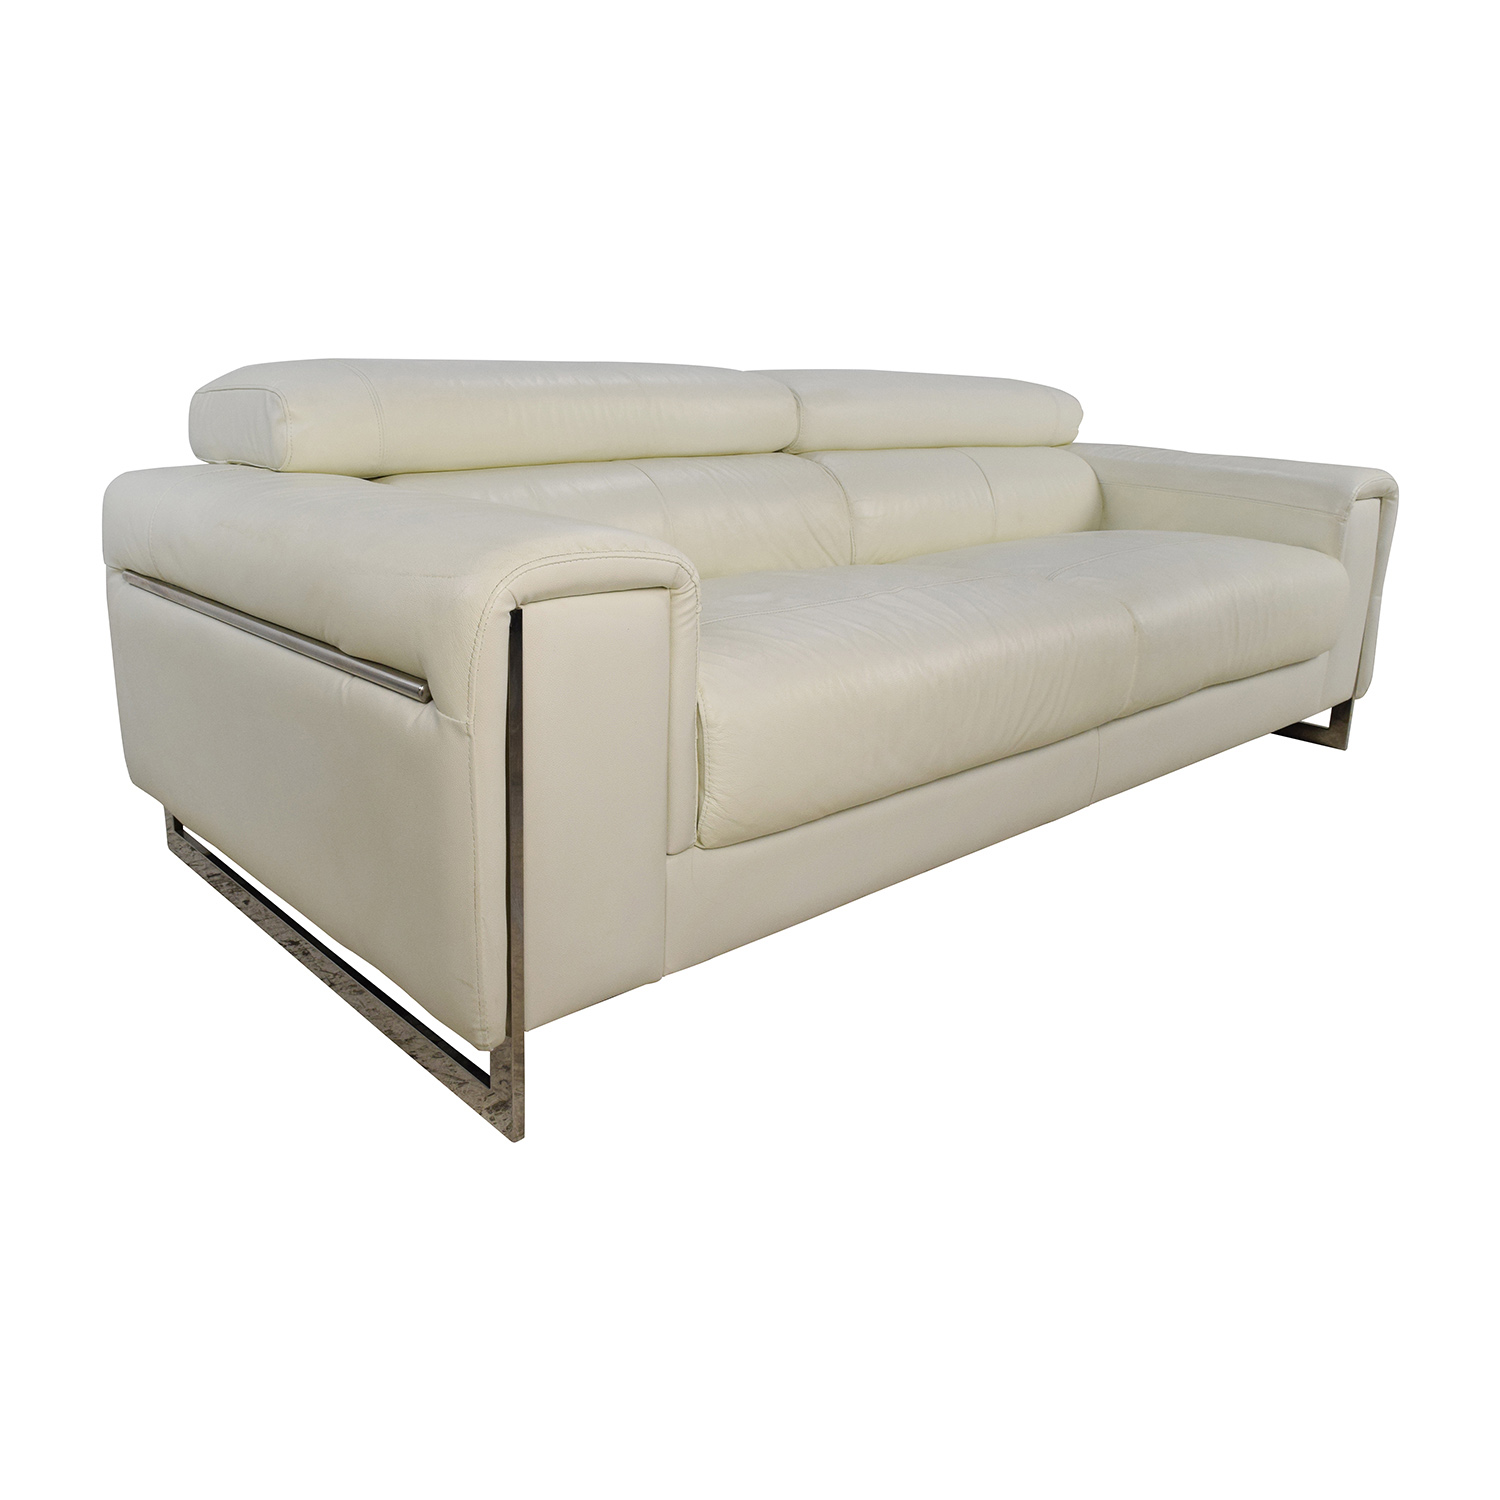 j m paquet sofa billig sovesofa med chaiselong 64 off jnm and soho white leather sofas